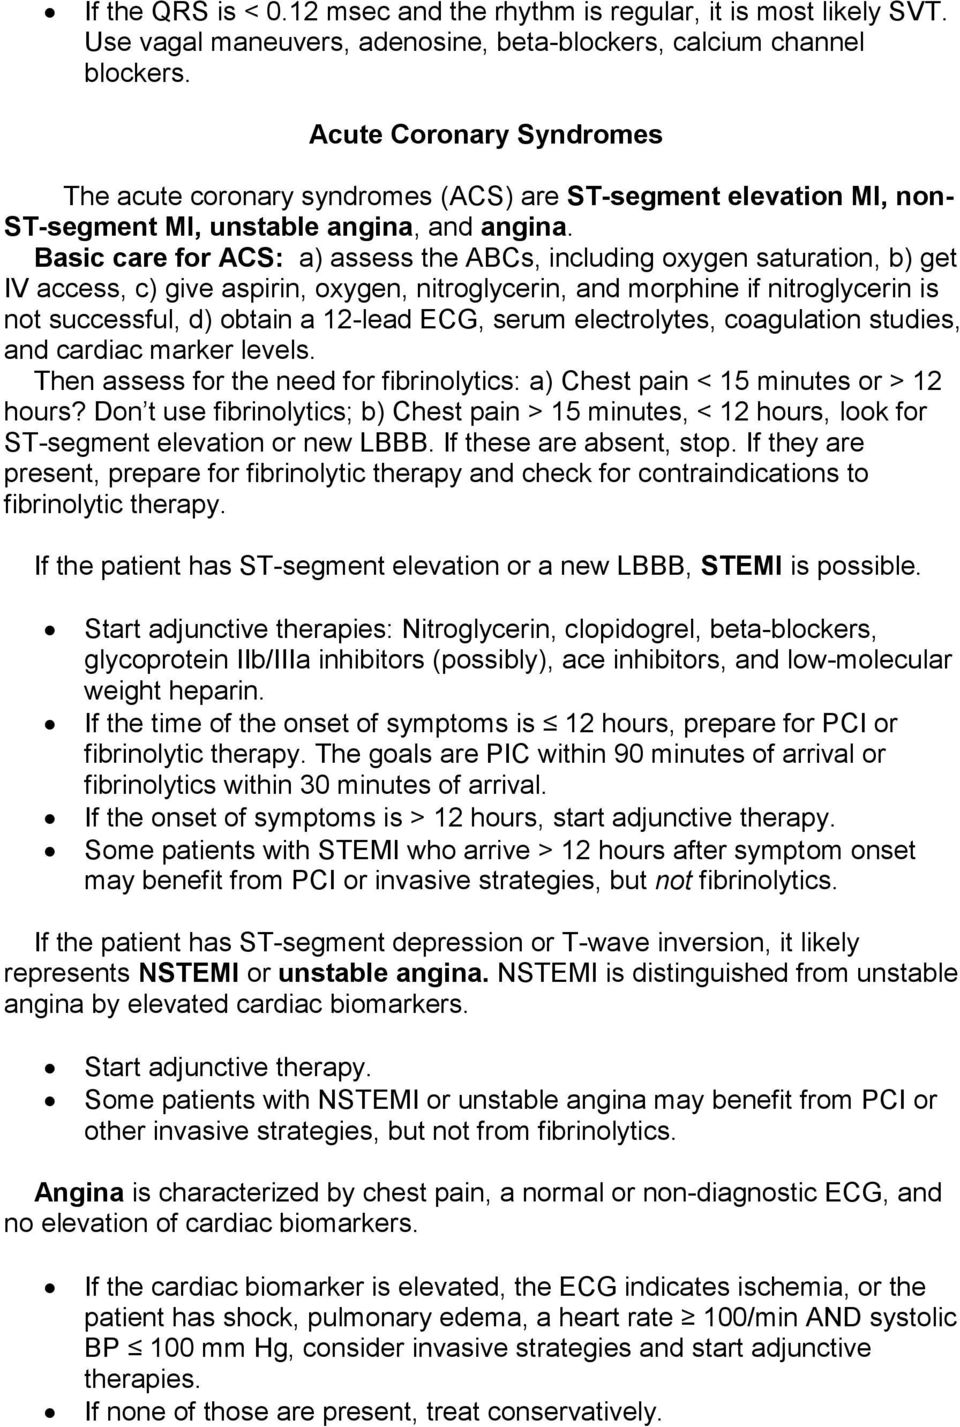 Basic care for ACS: a) assess the ABCs, including oxygen saturation, b) get IV access, c) give aspirin, oxygen, nitroglycerin, and morphine if nitroglycerin is not successful, d) obtain a 12-lead